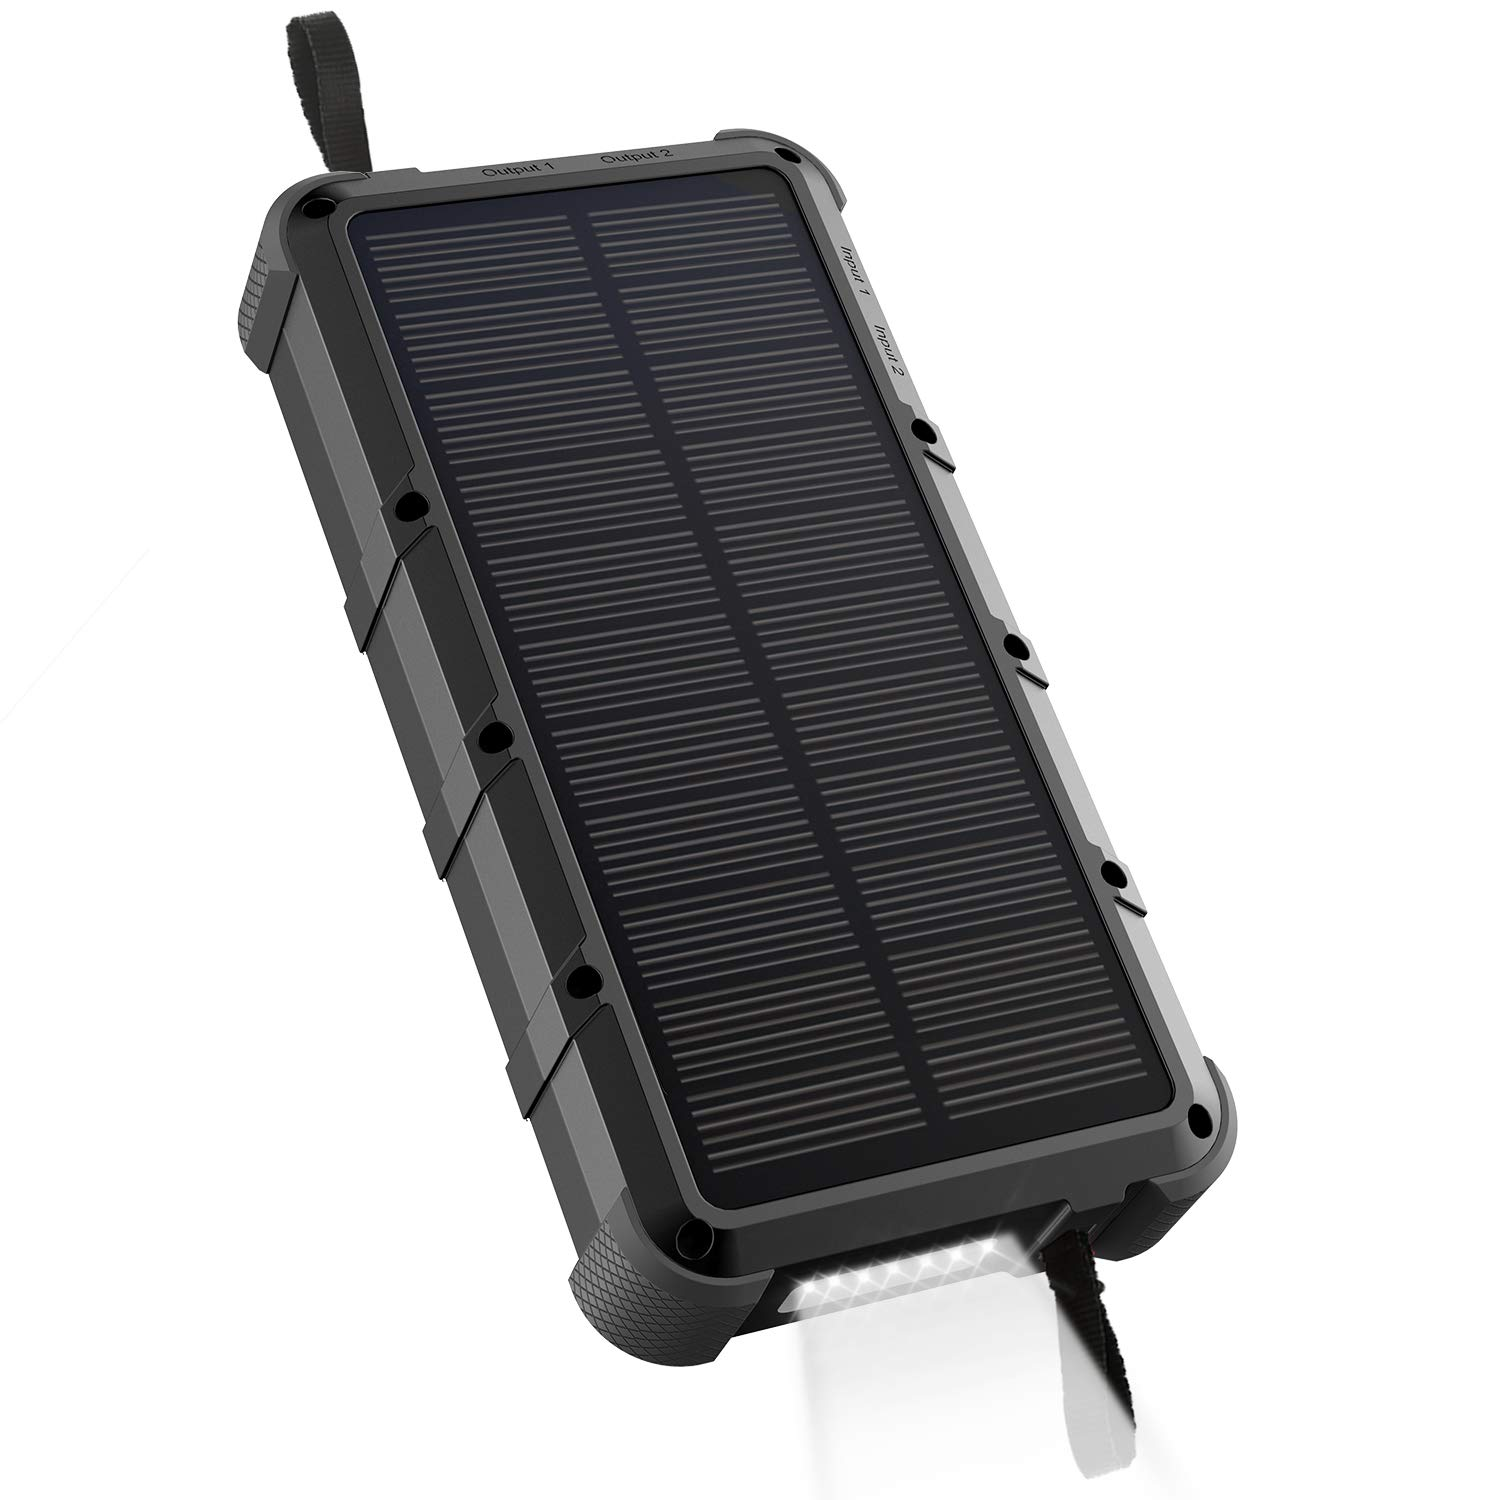 OUTXE Waterproof Solar Power Bank 20000mAh with Flashlight, Dual Input, Quick Charge Rugged Solar Phone Charger by OUTXE